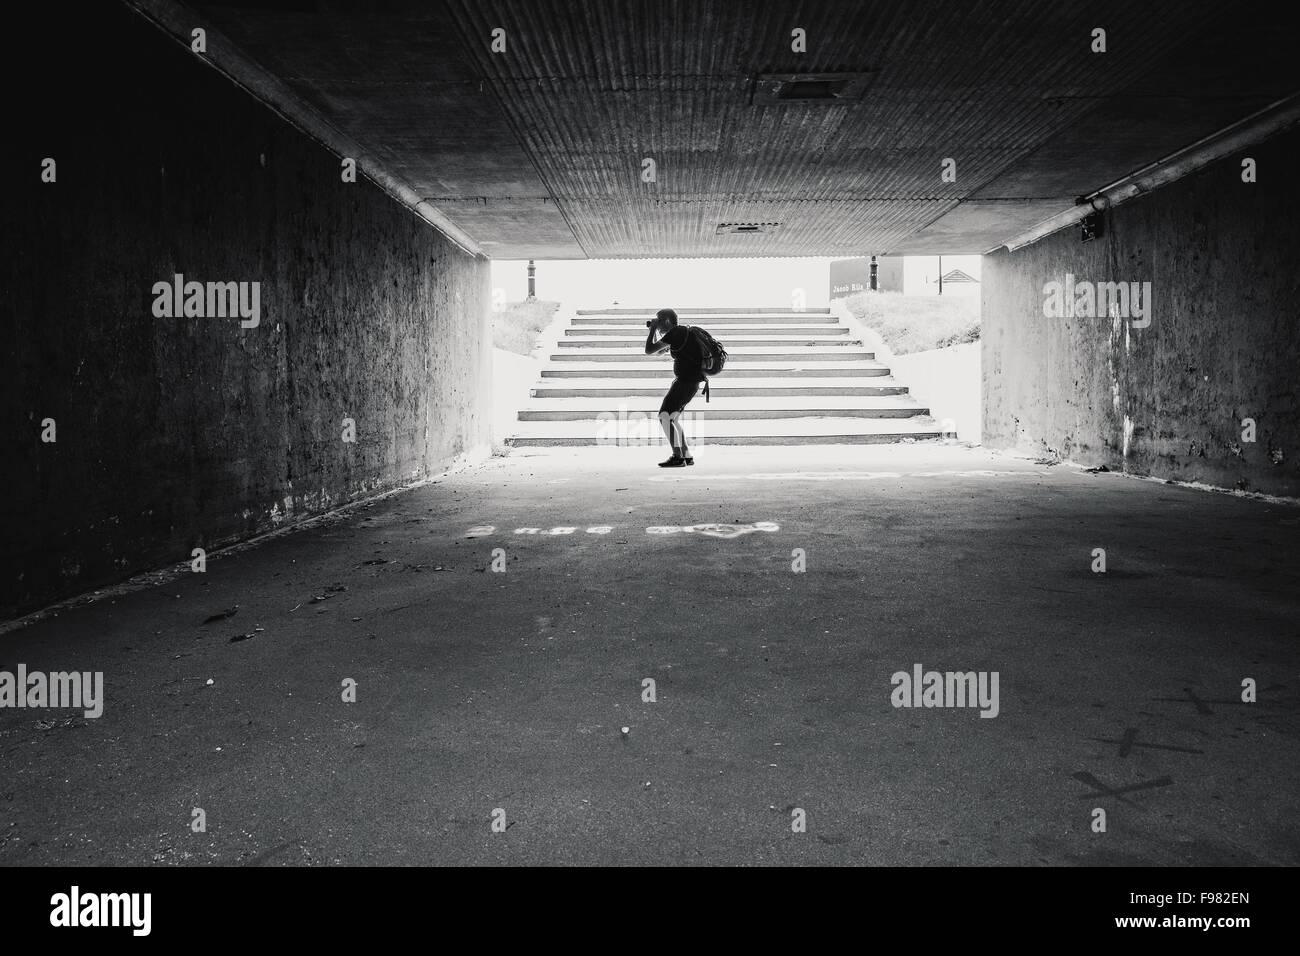 Side View Of Man Photographing In Tunnel - Stock Image